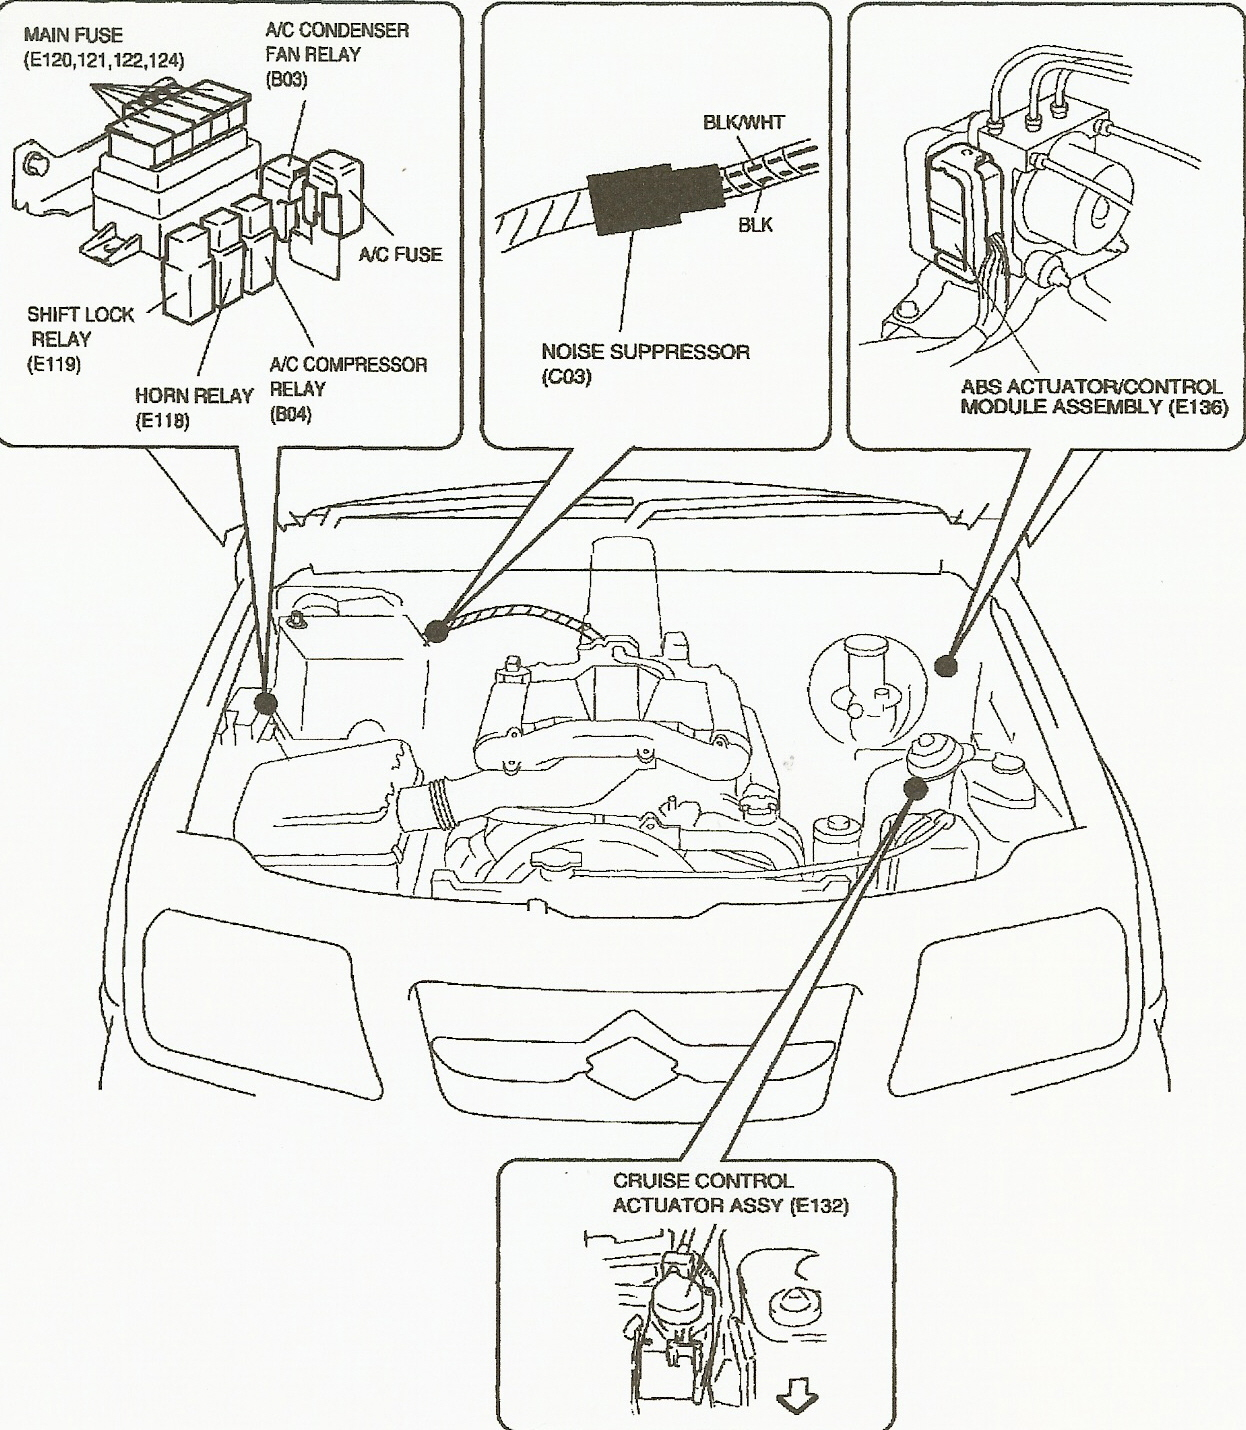 99 ford expedition fuse panel diagram triumph street triple 675 wiring 2001 box database 1999 layout center console